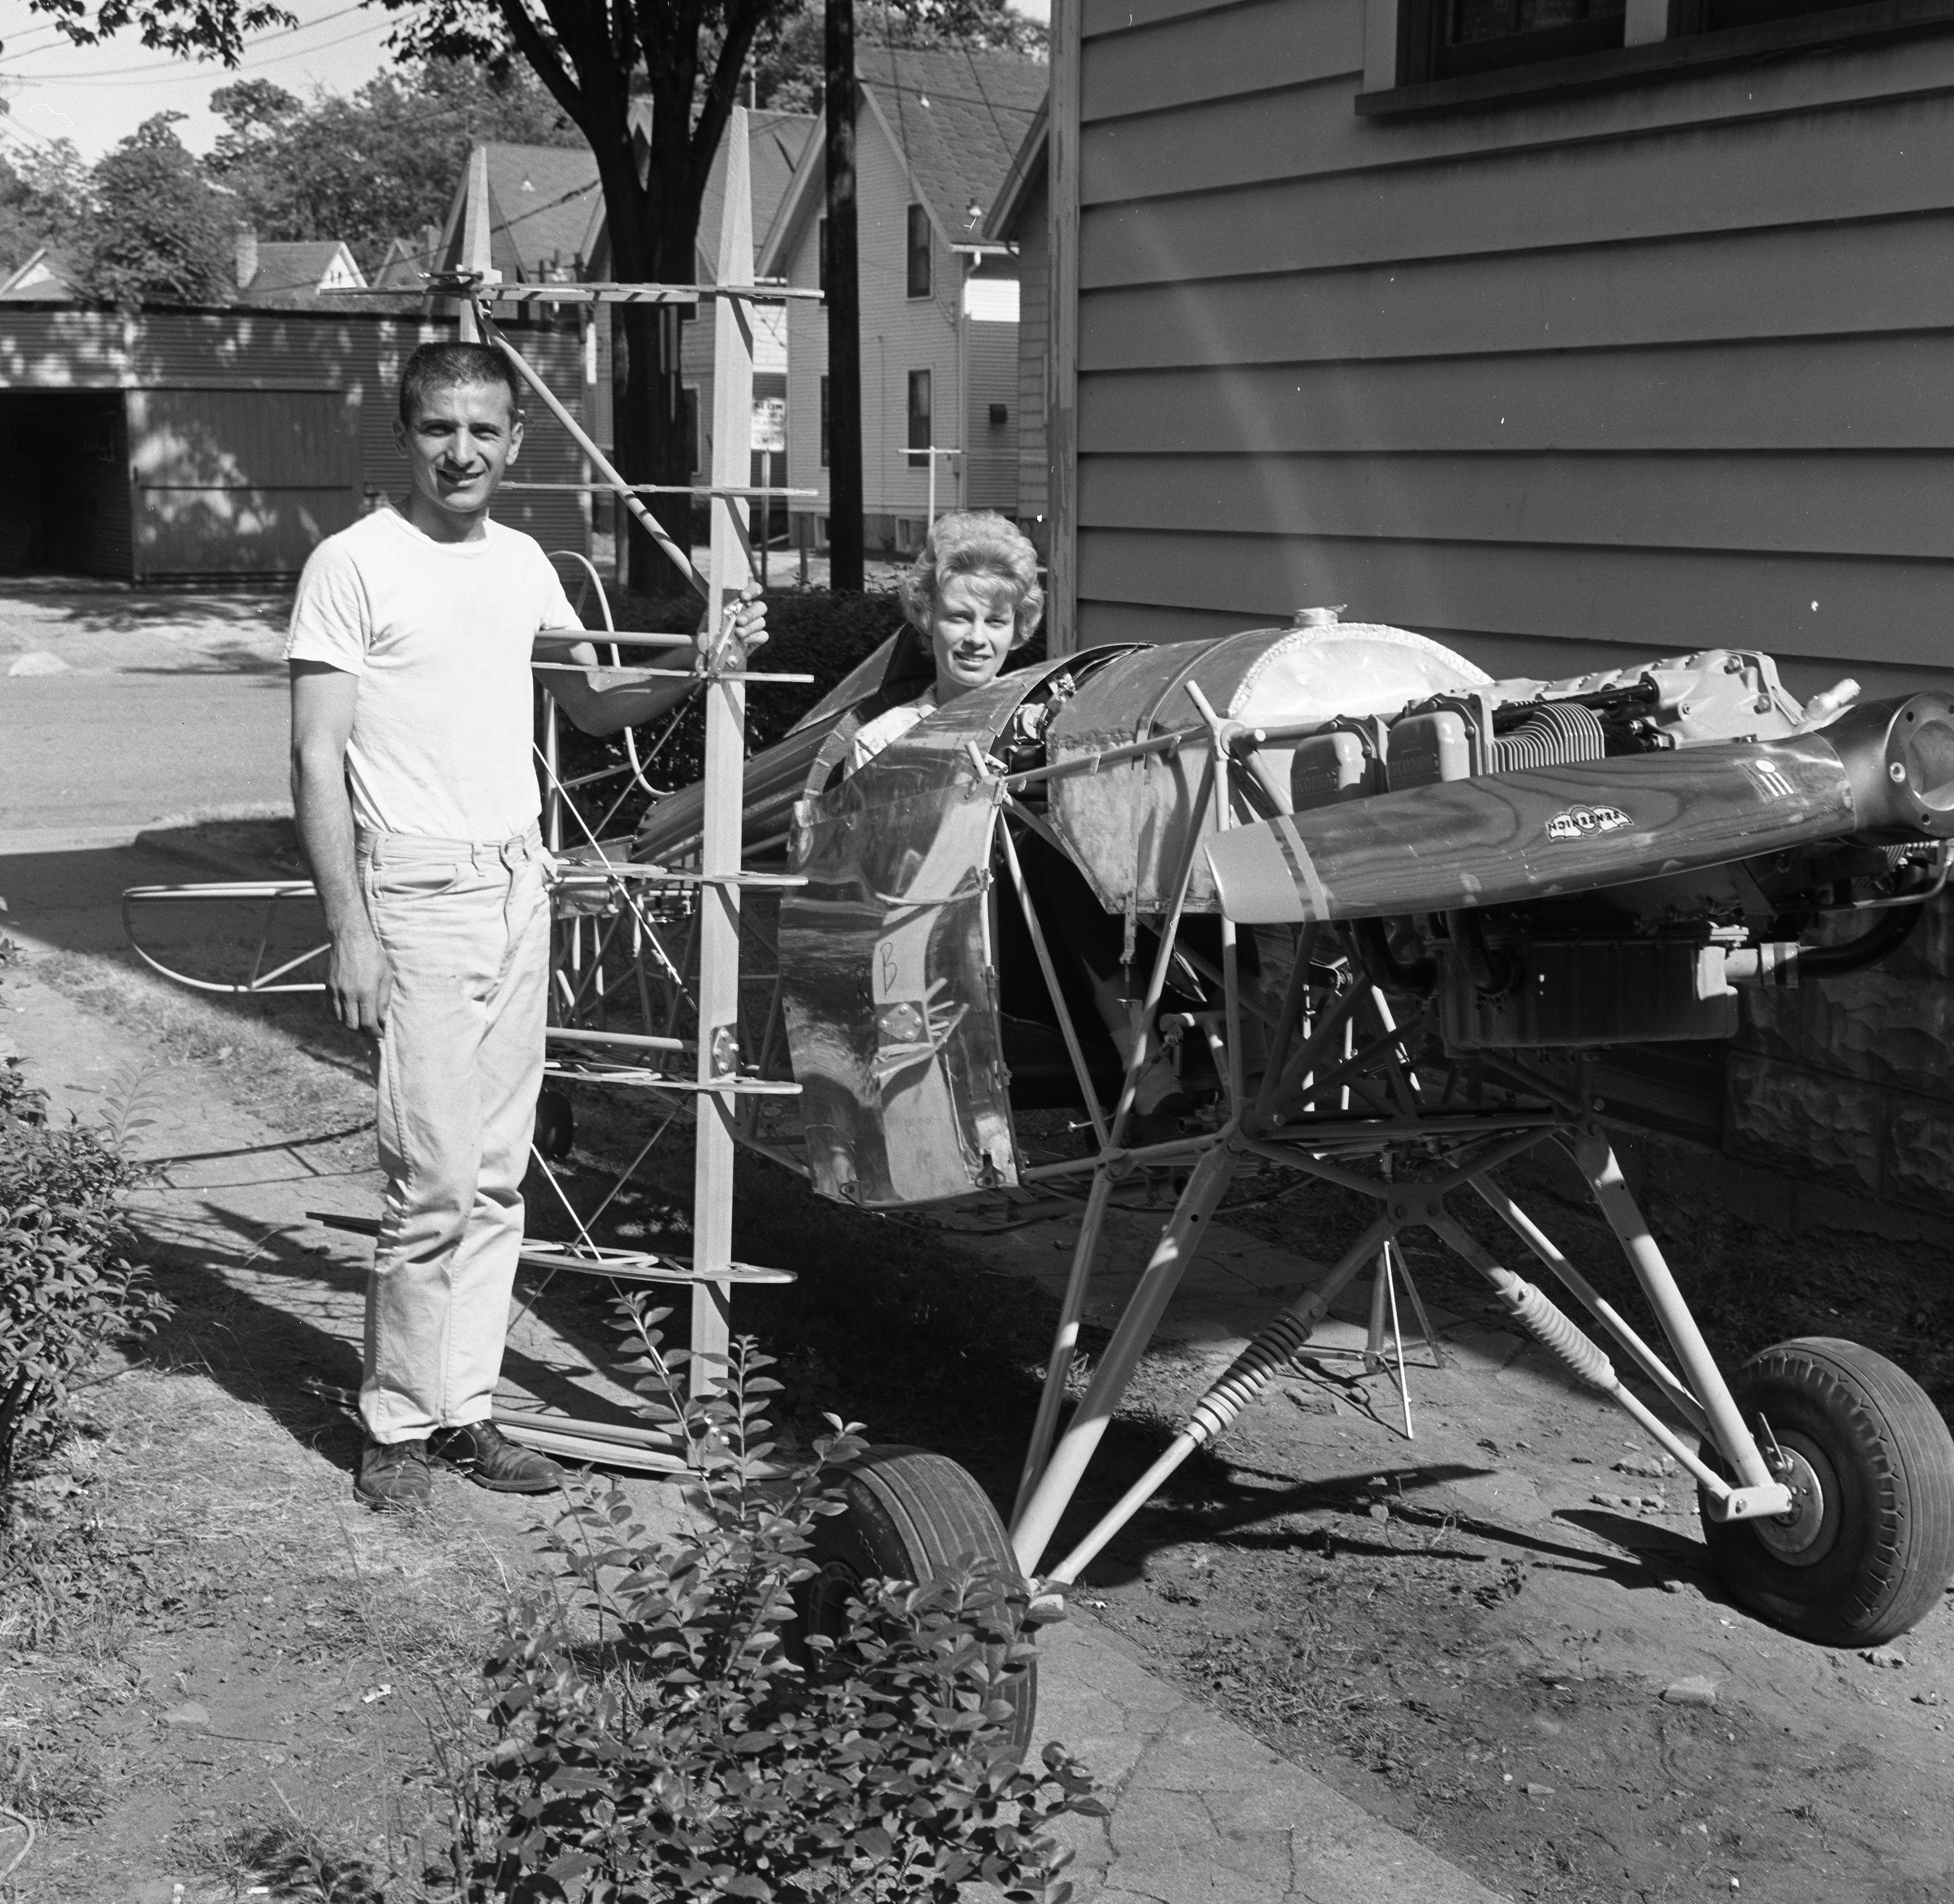 Ann and Don Pellegreno of Hill Street With Biplane Built for Acrobatic Flying, July 1963 image